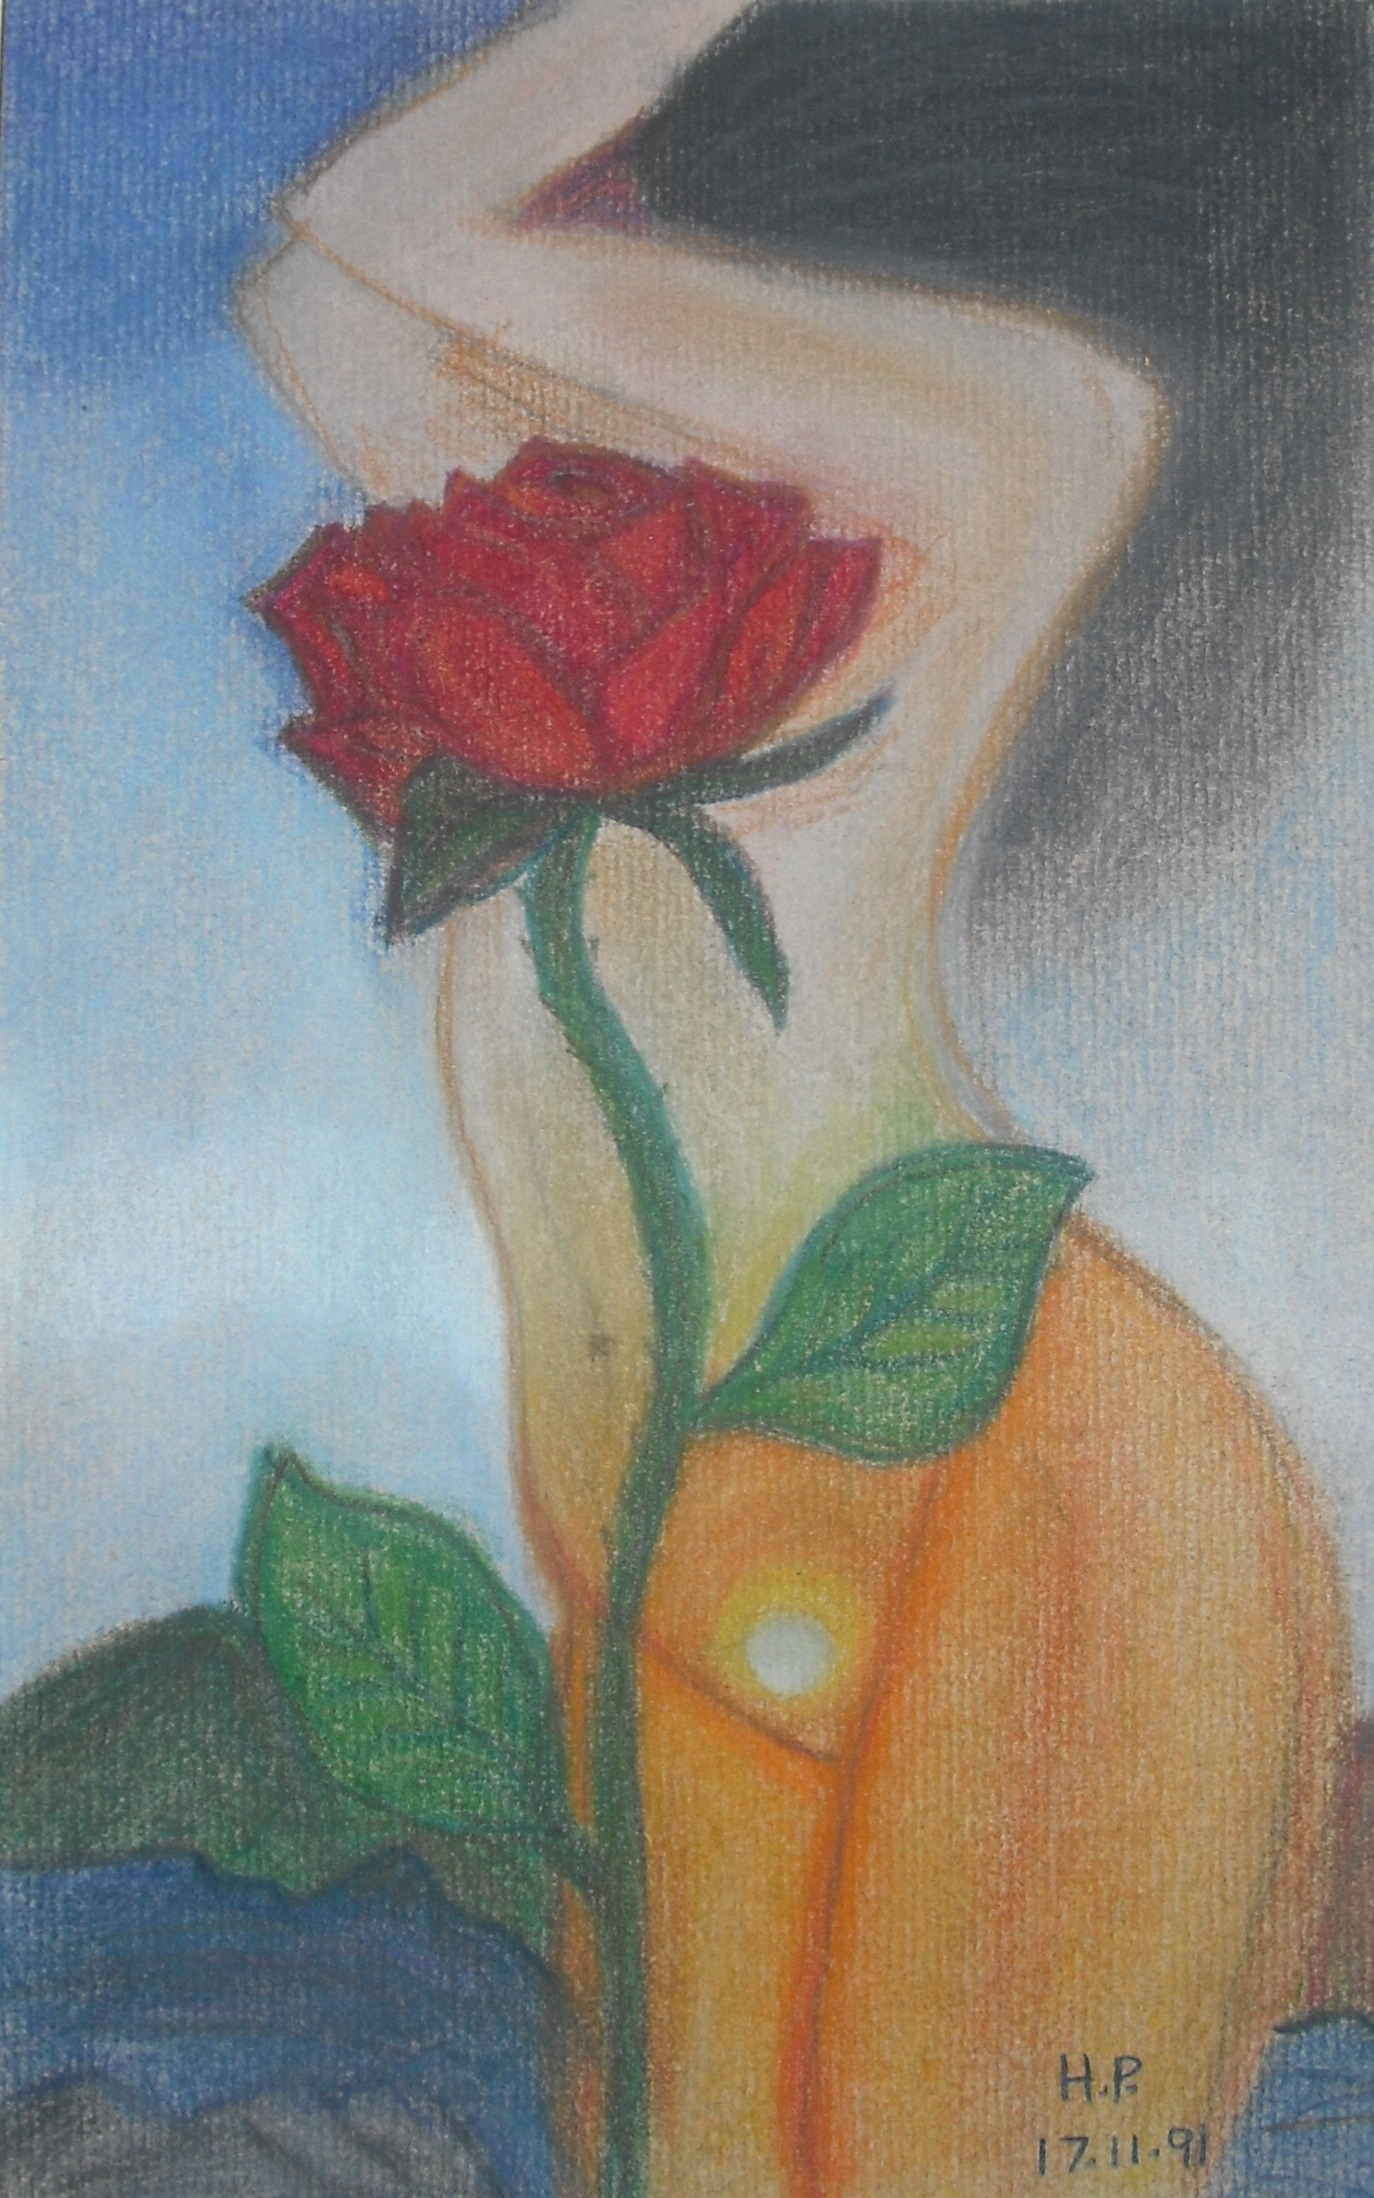 9352 || 2491 || Lady and the rose || £50.00 || 4962